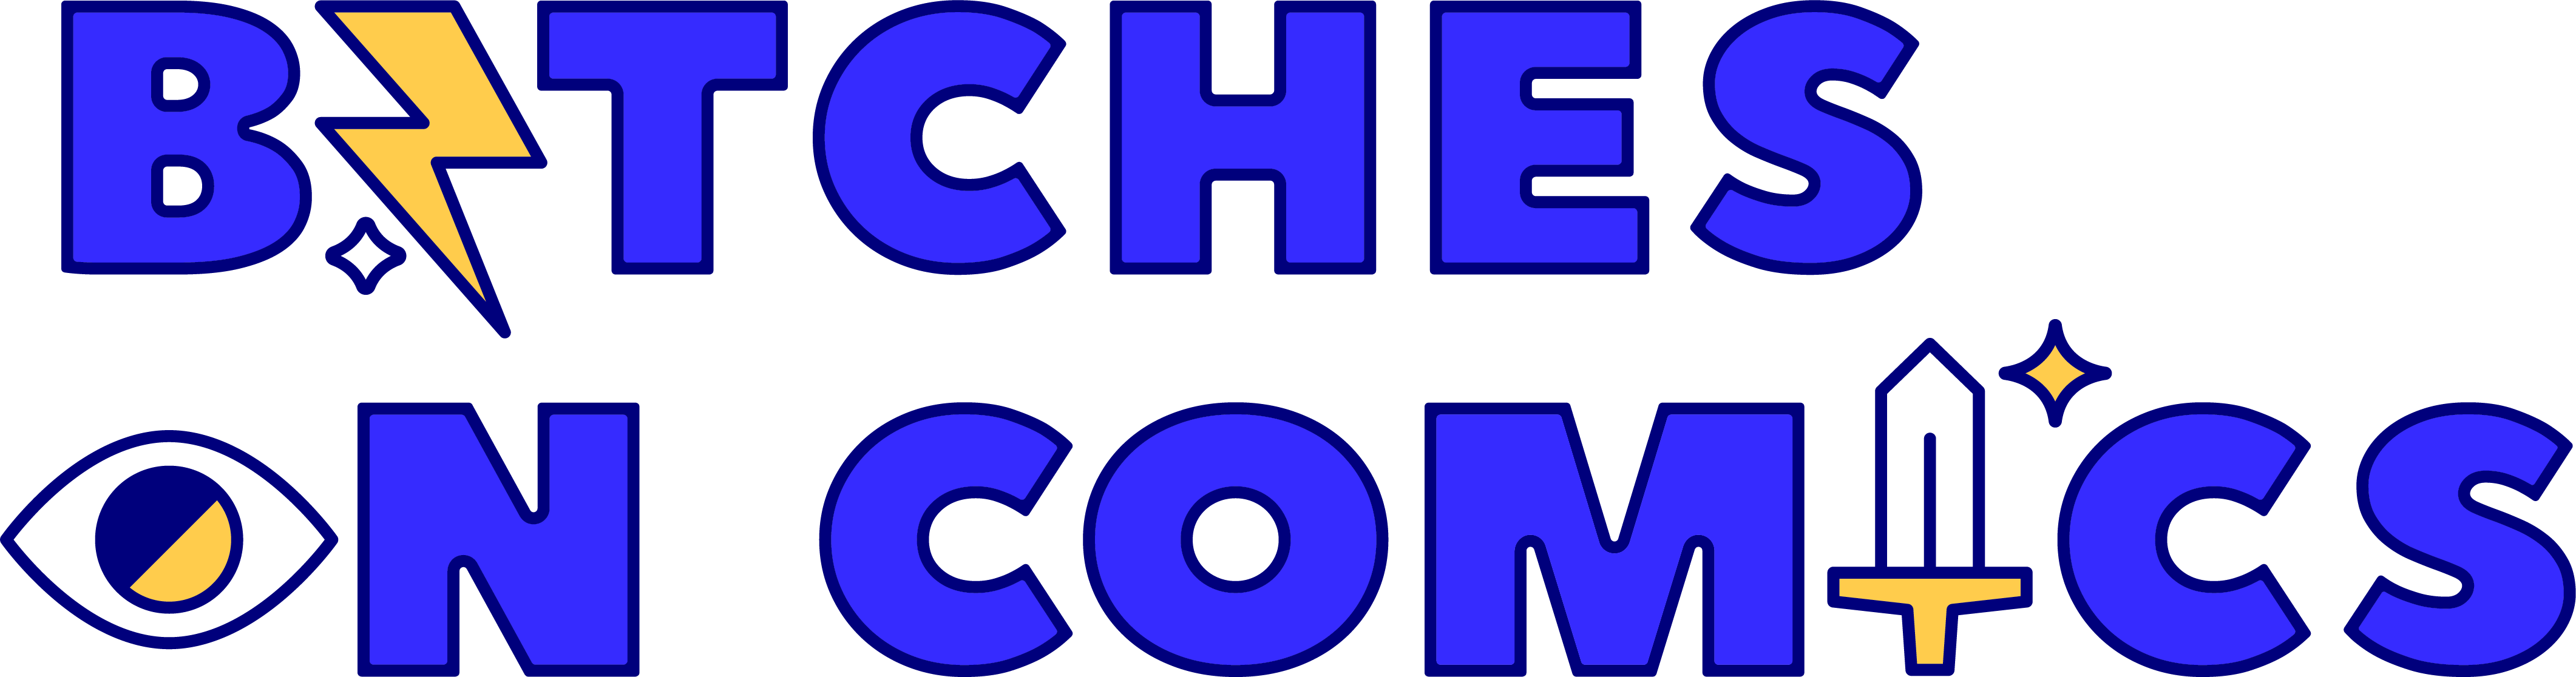 A header that says Bitches on Comics in a cool graphic font